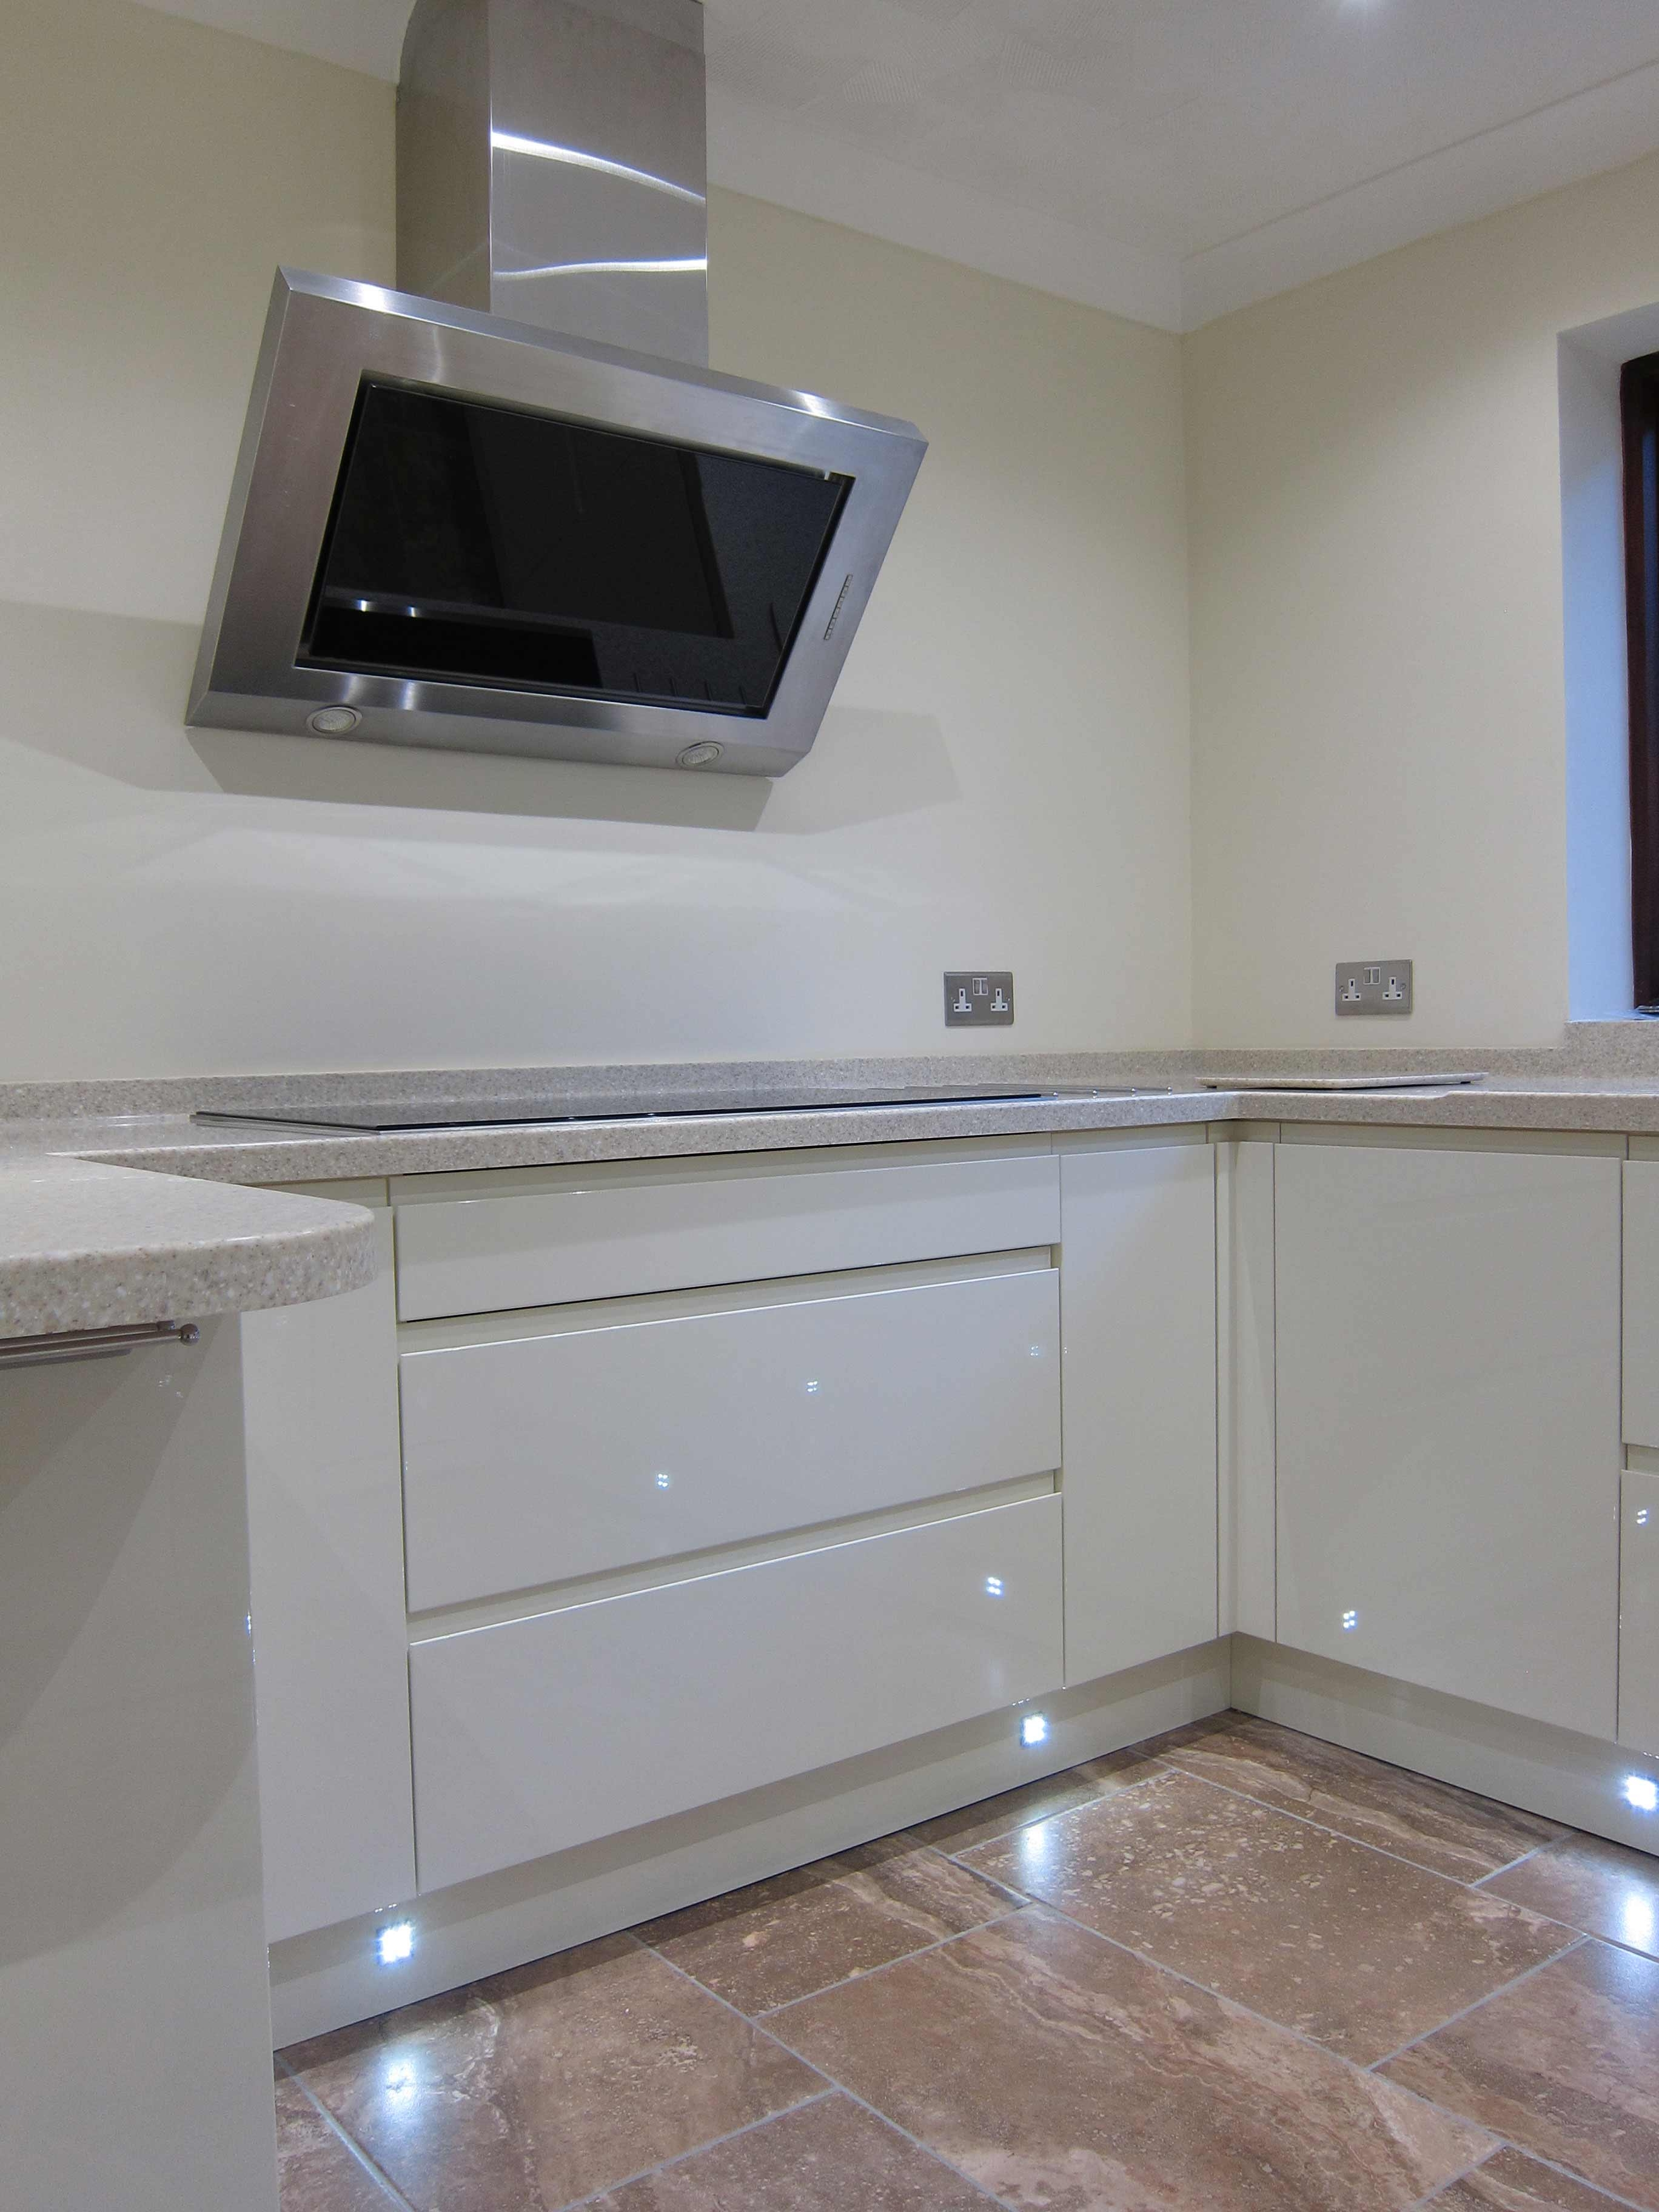 Rimini Handleless Cream Led Plinth Lights Pebble Kitchens Regarding Plinth Drawers (#12 of 15)